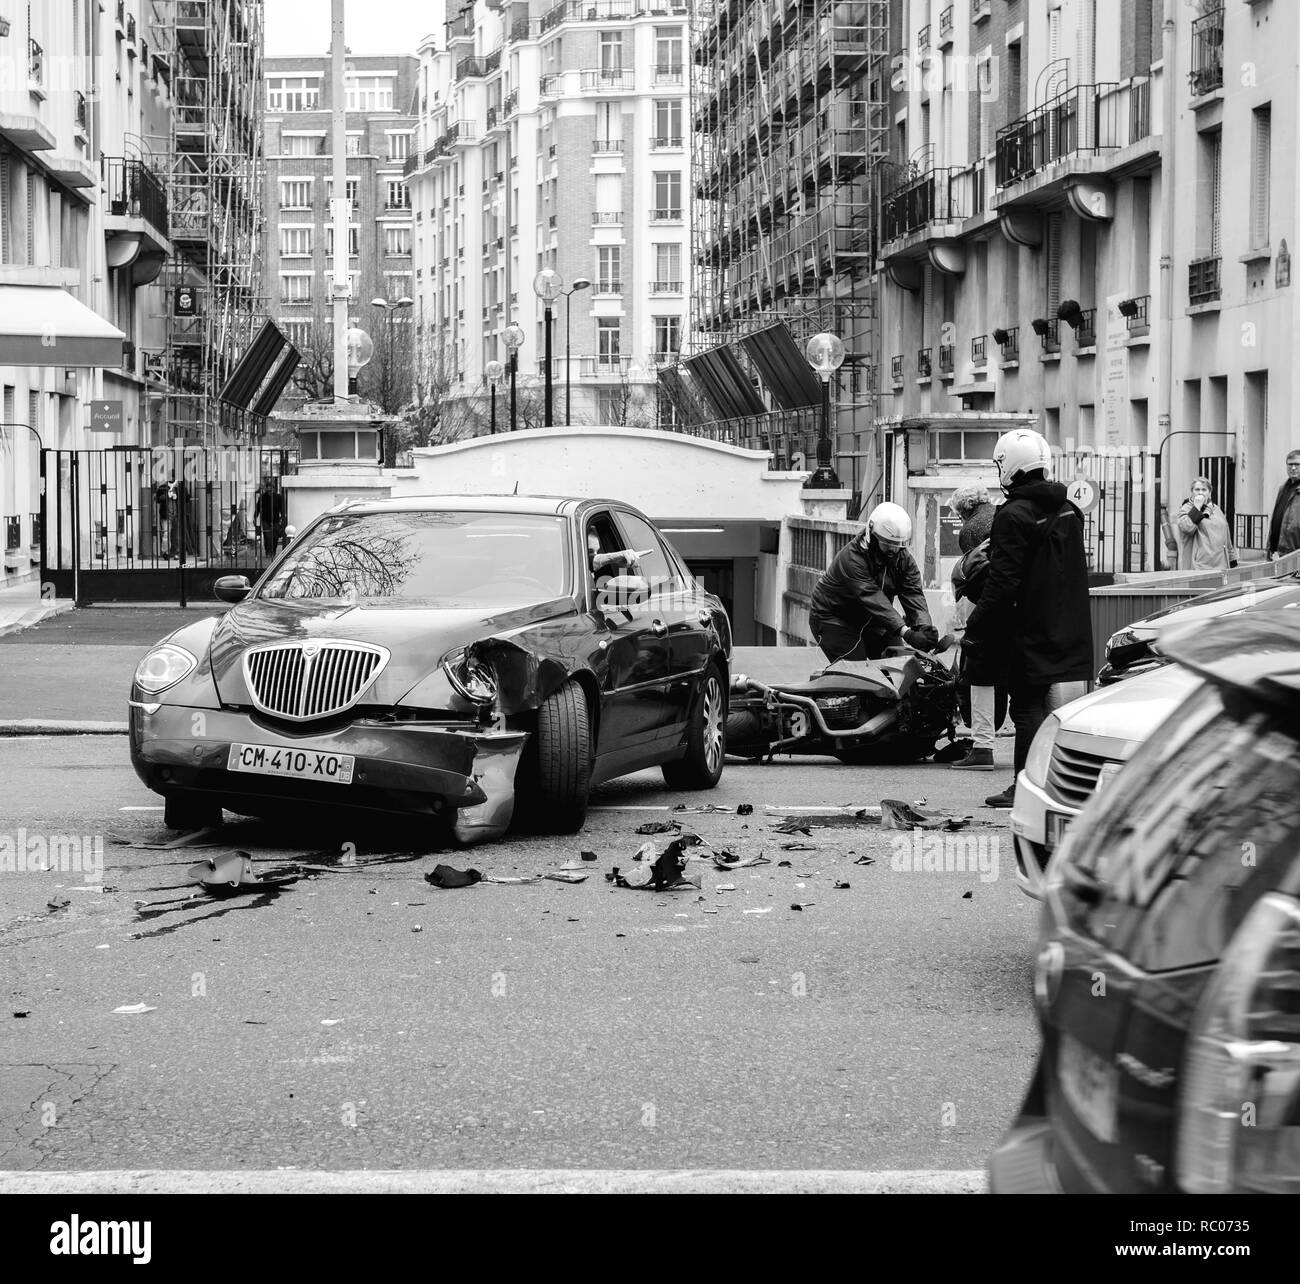 PARIS, FRANCE - JAN 30, 2018: Car accident on Paris street between luxury limousine Lancia Thesis and scooter moped transporting medical transfusion blood - rue de Courcelles - Stock Image